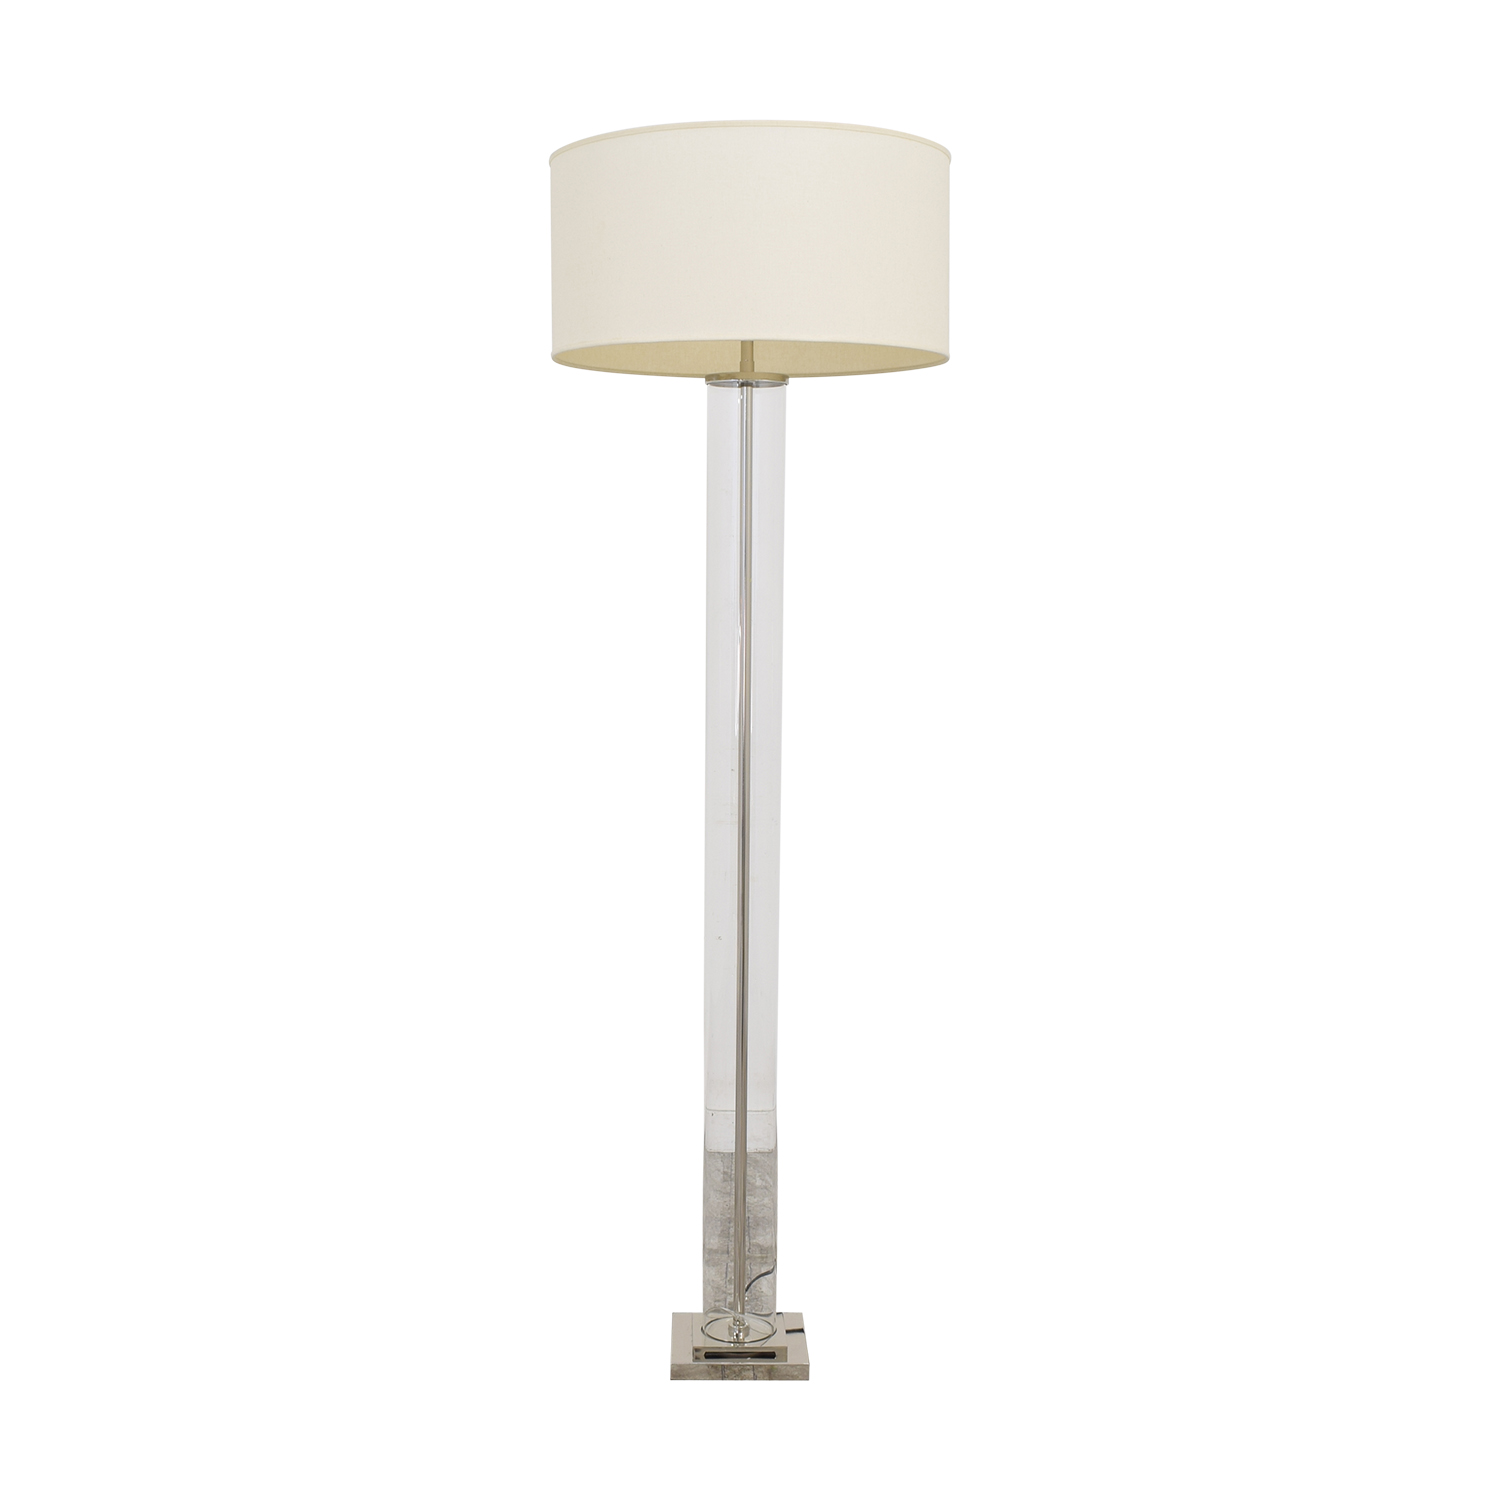 Restoration Hardware Restoration Hardware French Column Glass Floor Lamp with Shade dimensions